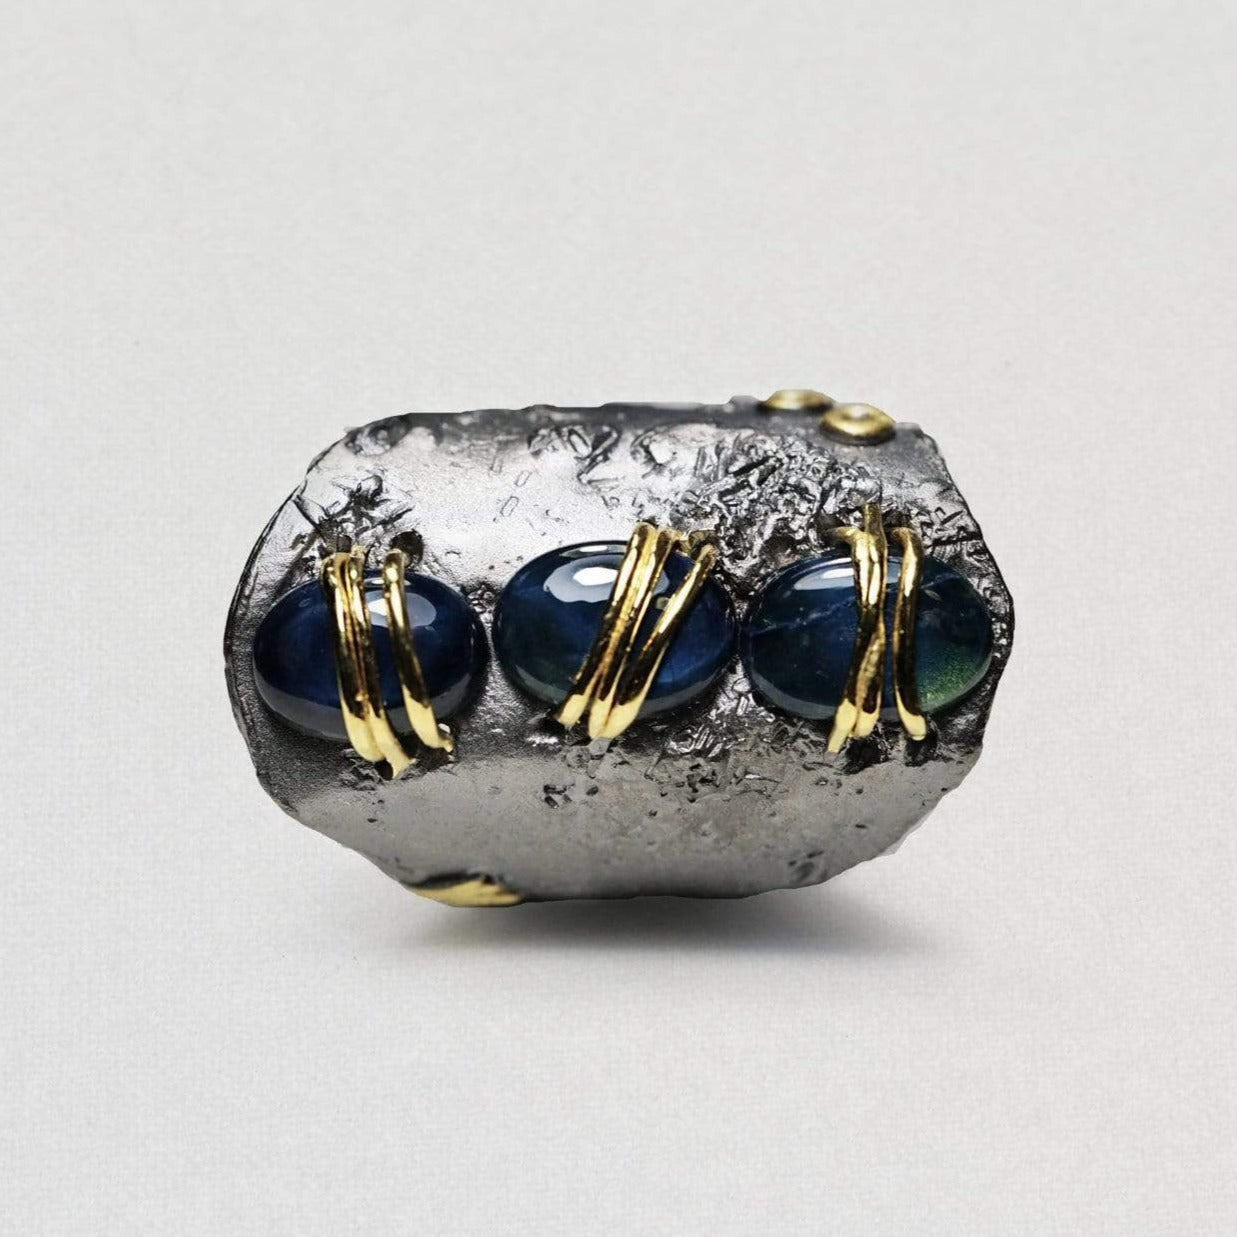 Anira Ring, Gold, gray, Handmade, Rhodium, Sapphire, spo-disabled, StoneColor:DeepBlue, Style:Everyday, Type:StoneCandyWired Ring